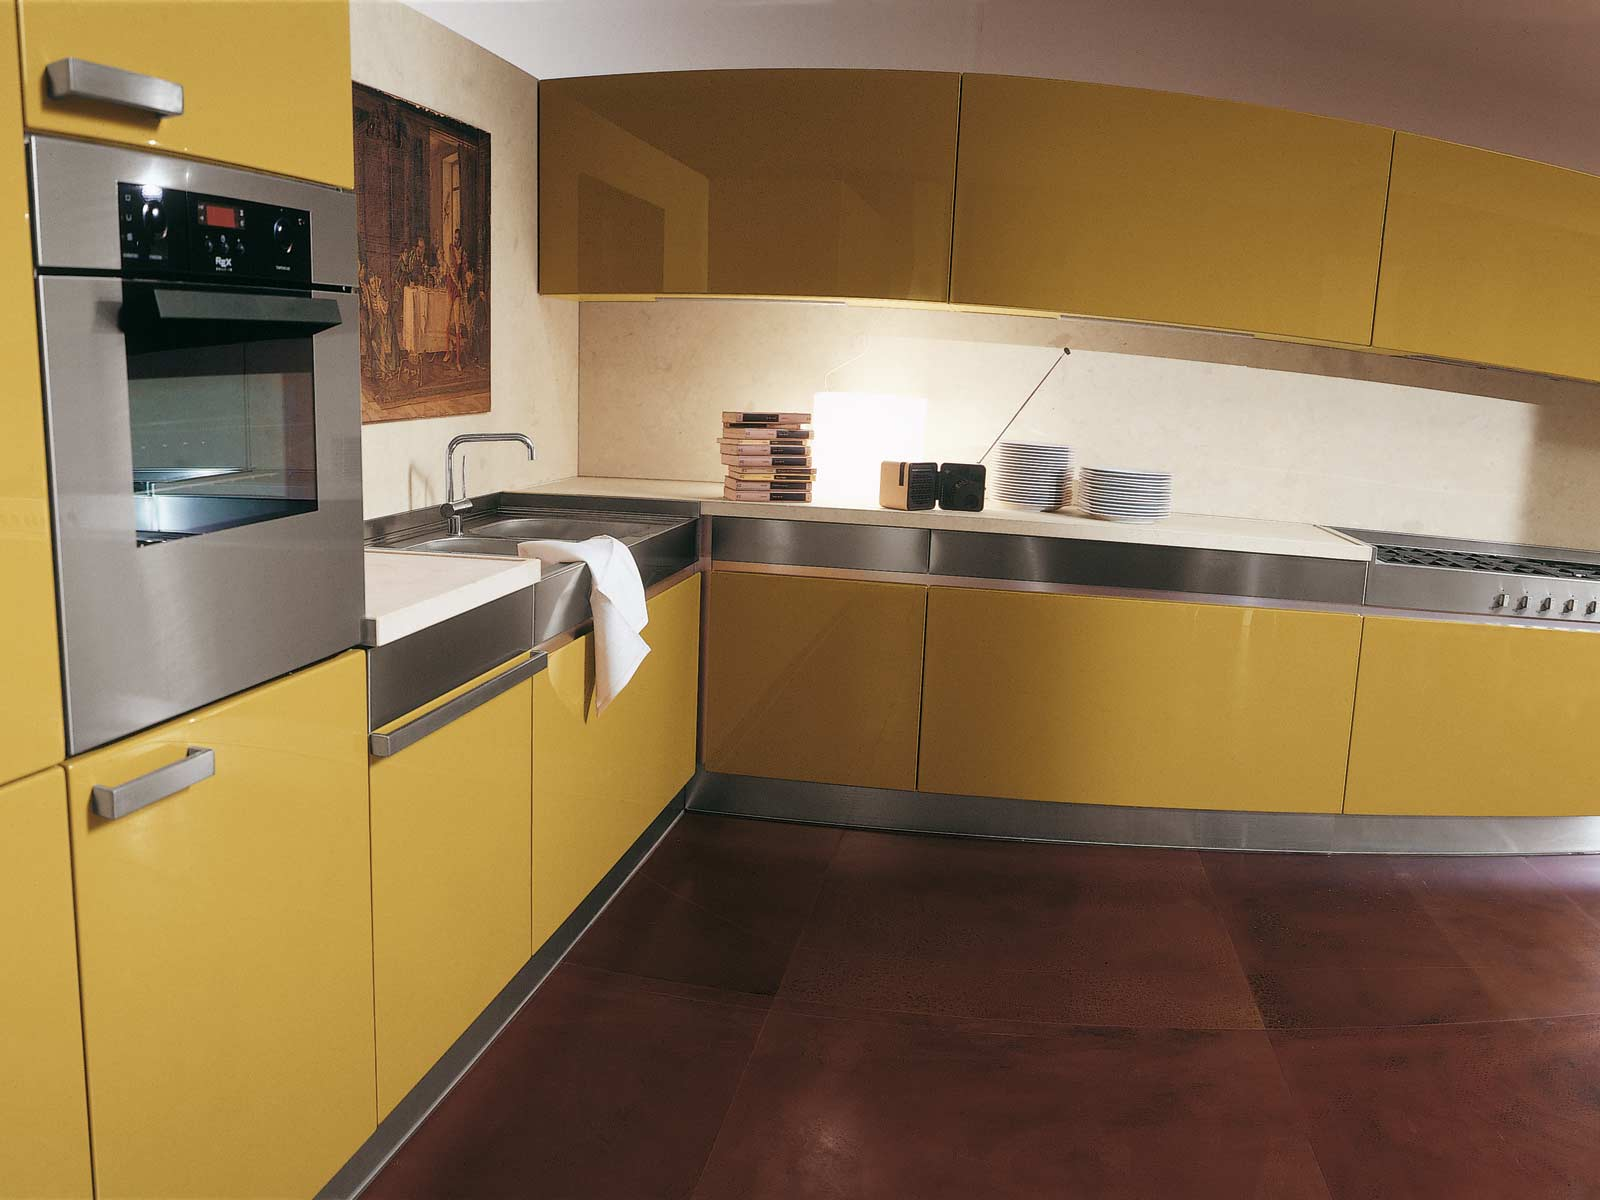 Yellow kitchens for Kitchenette layout ideas